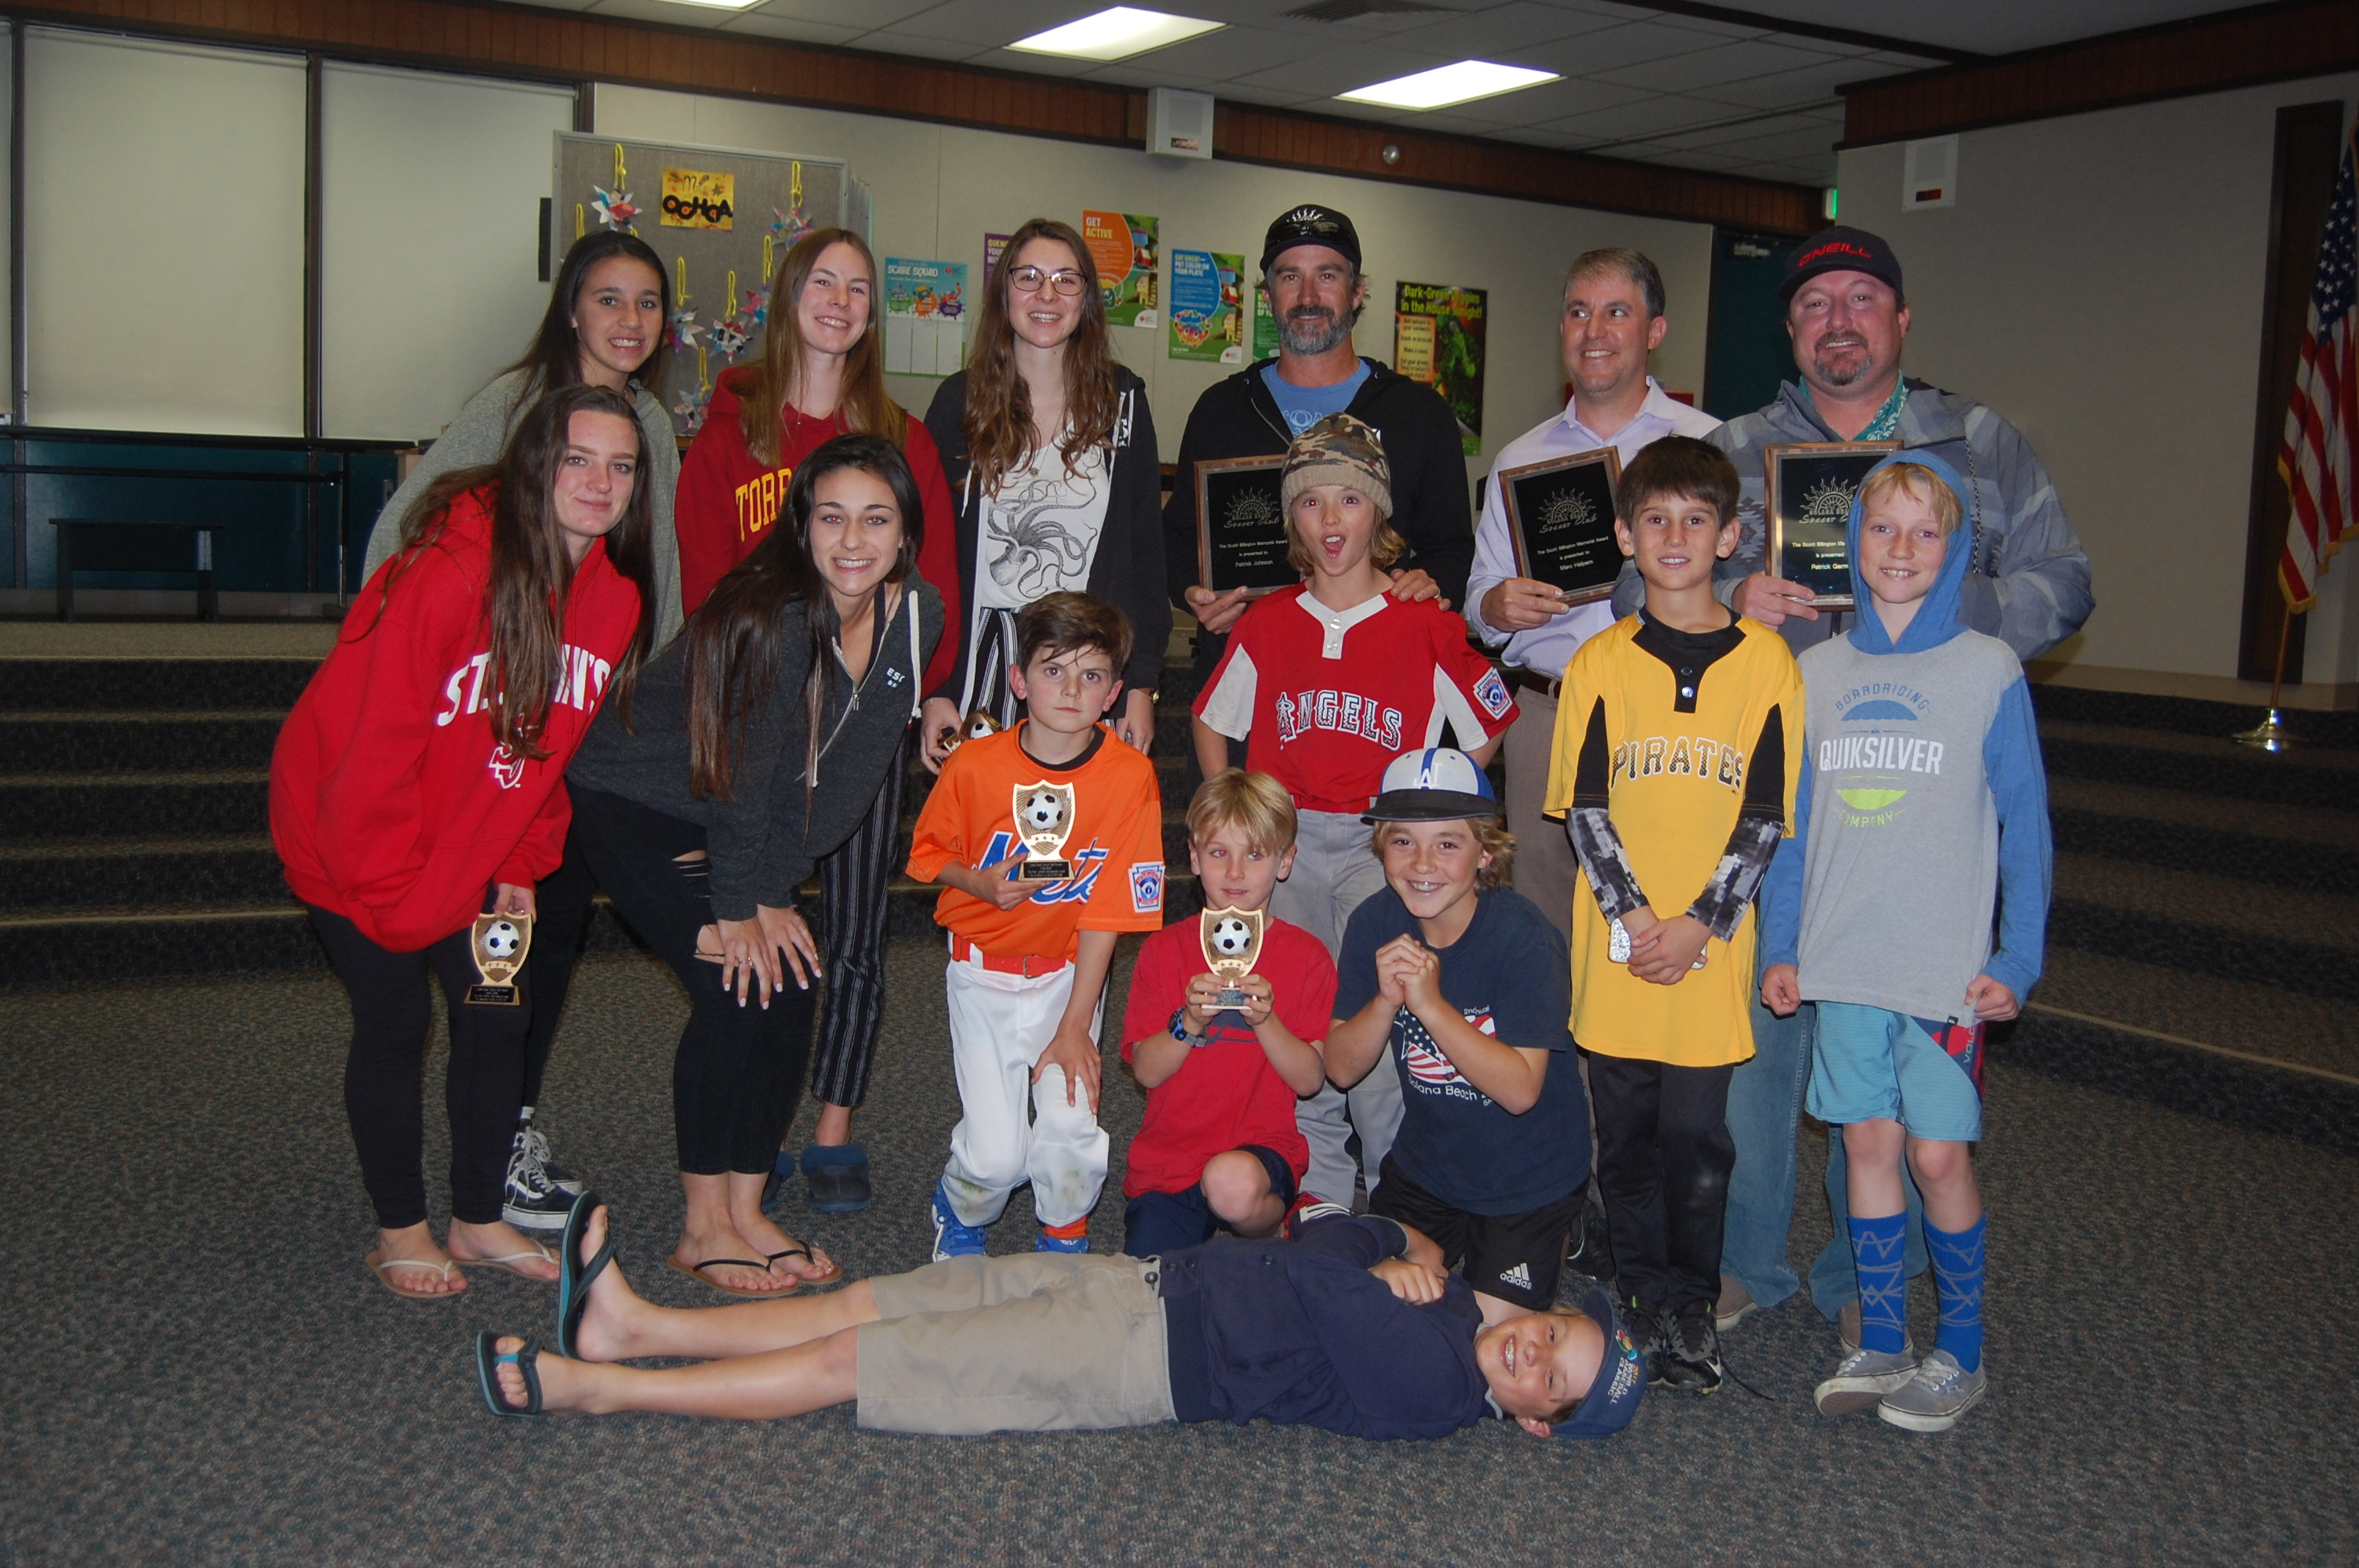 Soccer club honors players, coaches